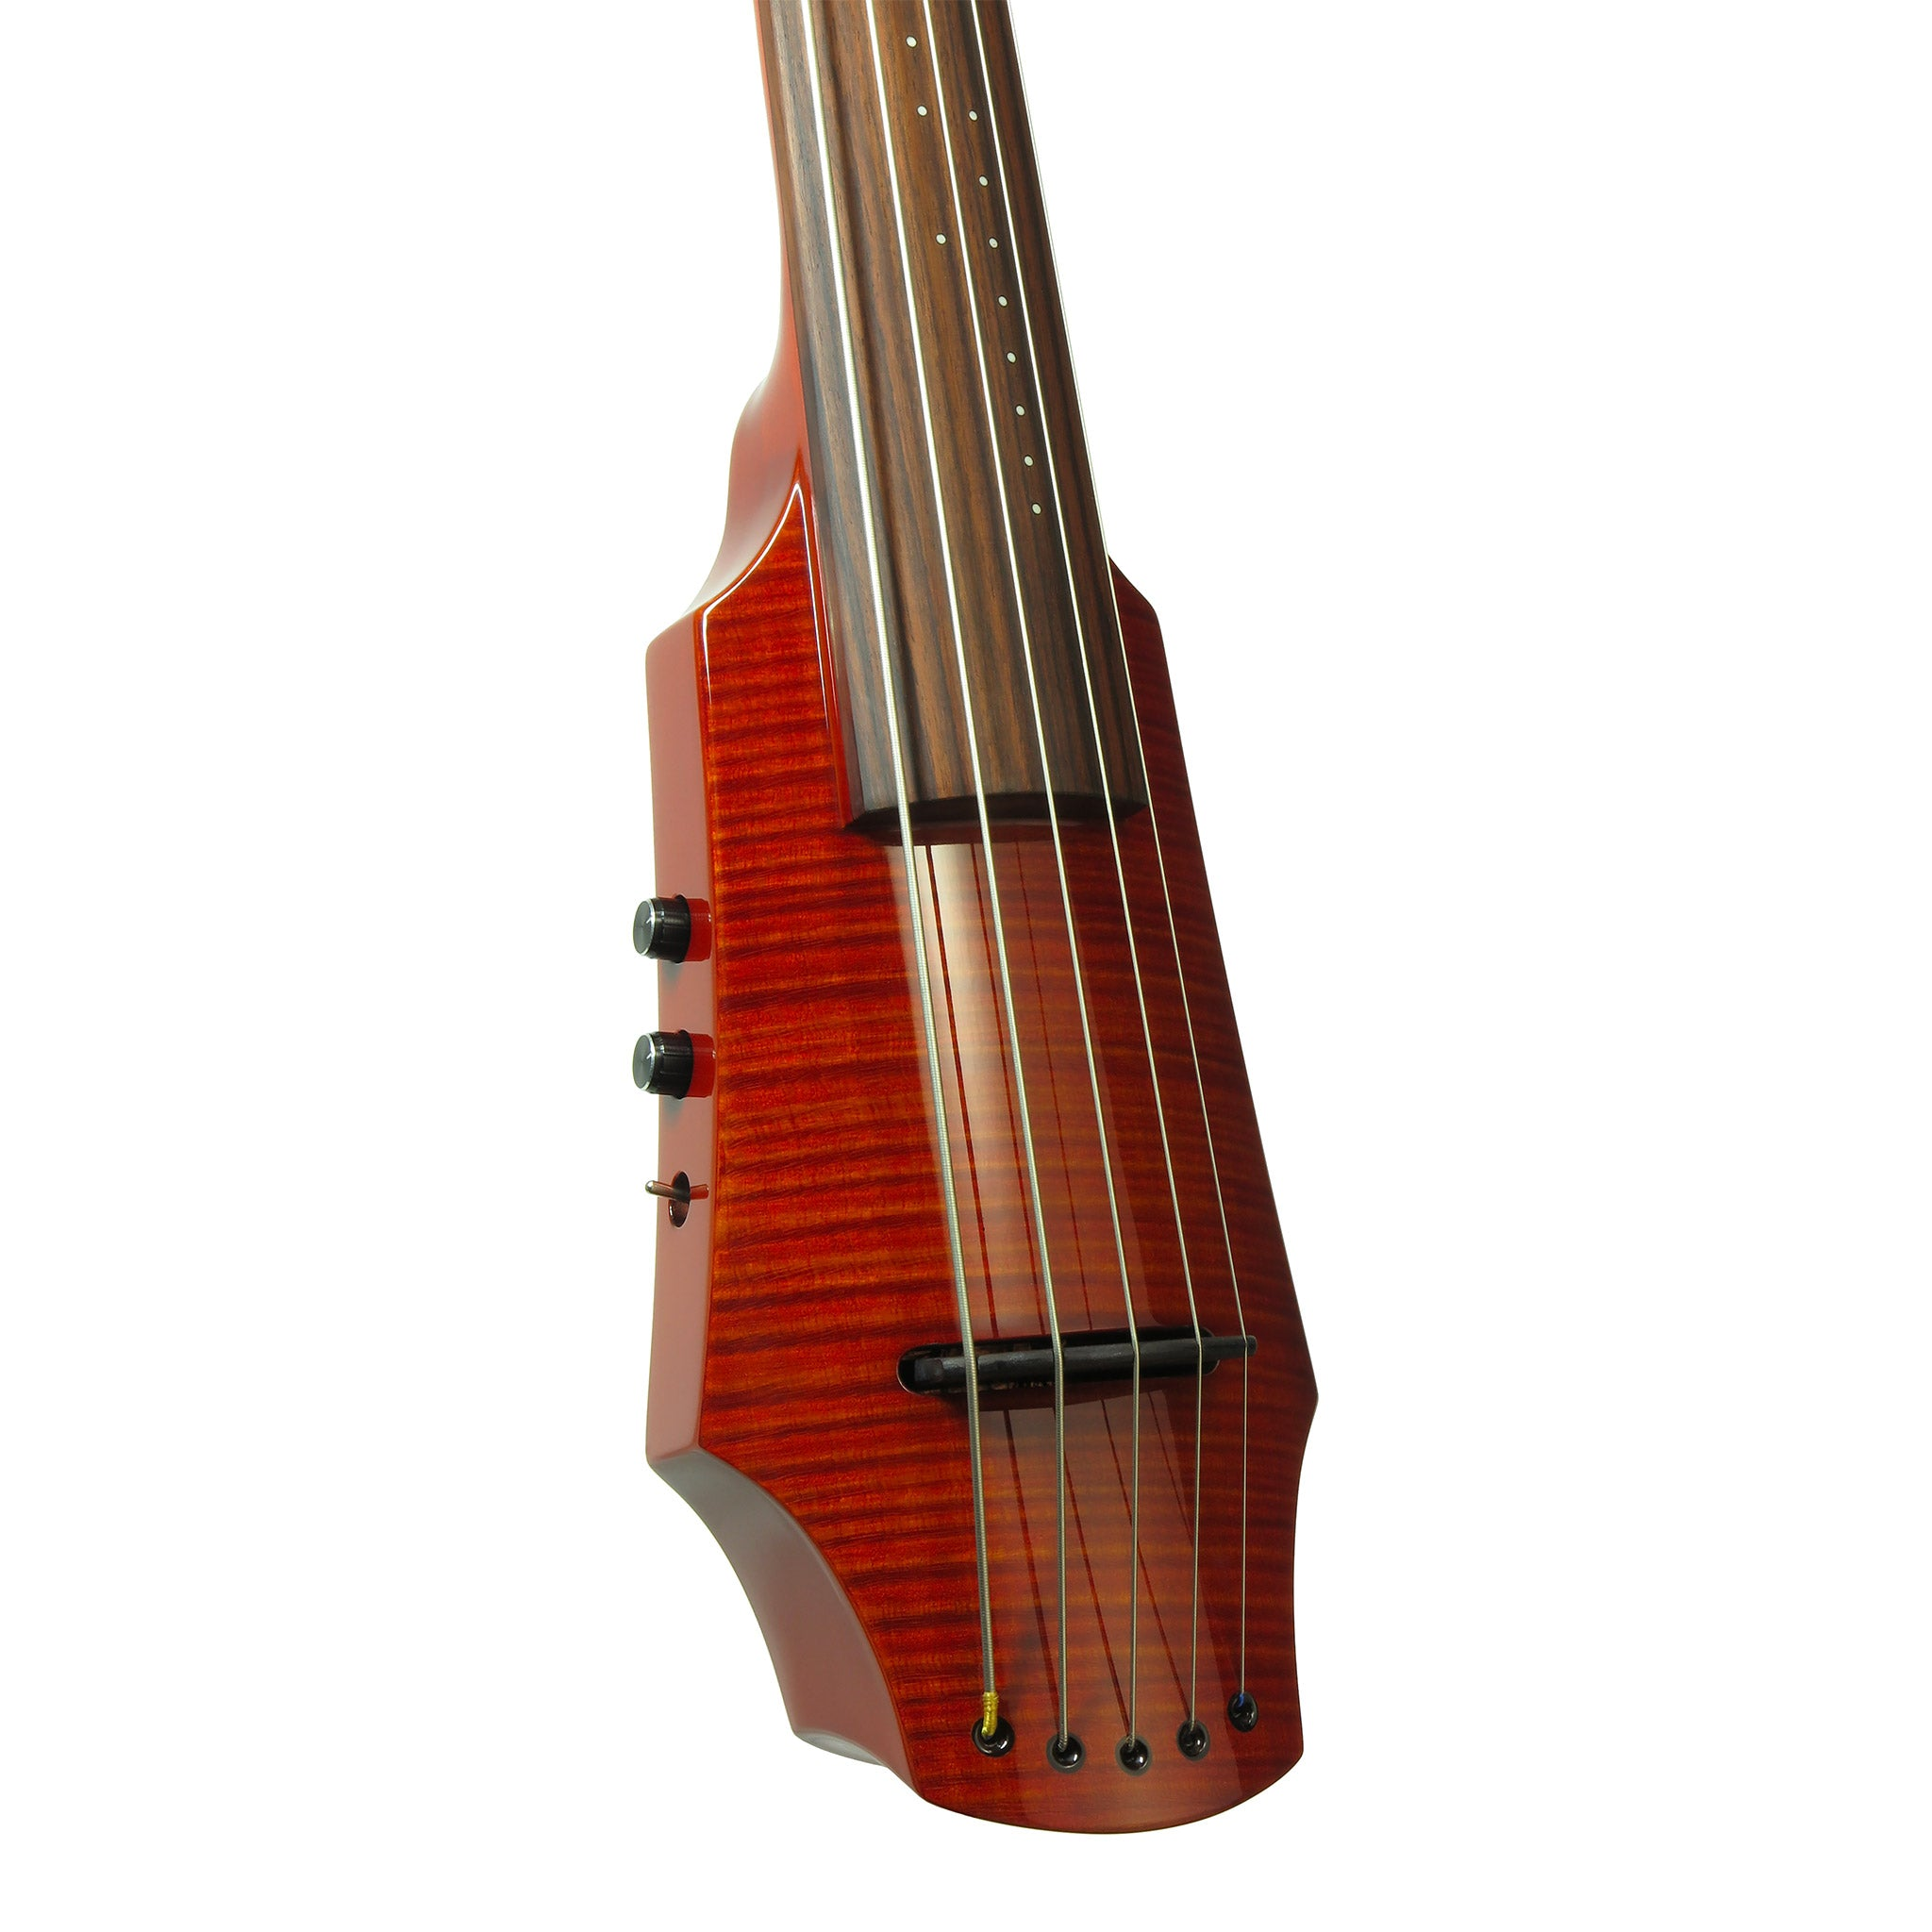 NS Design WAV 5-string Electric Cello